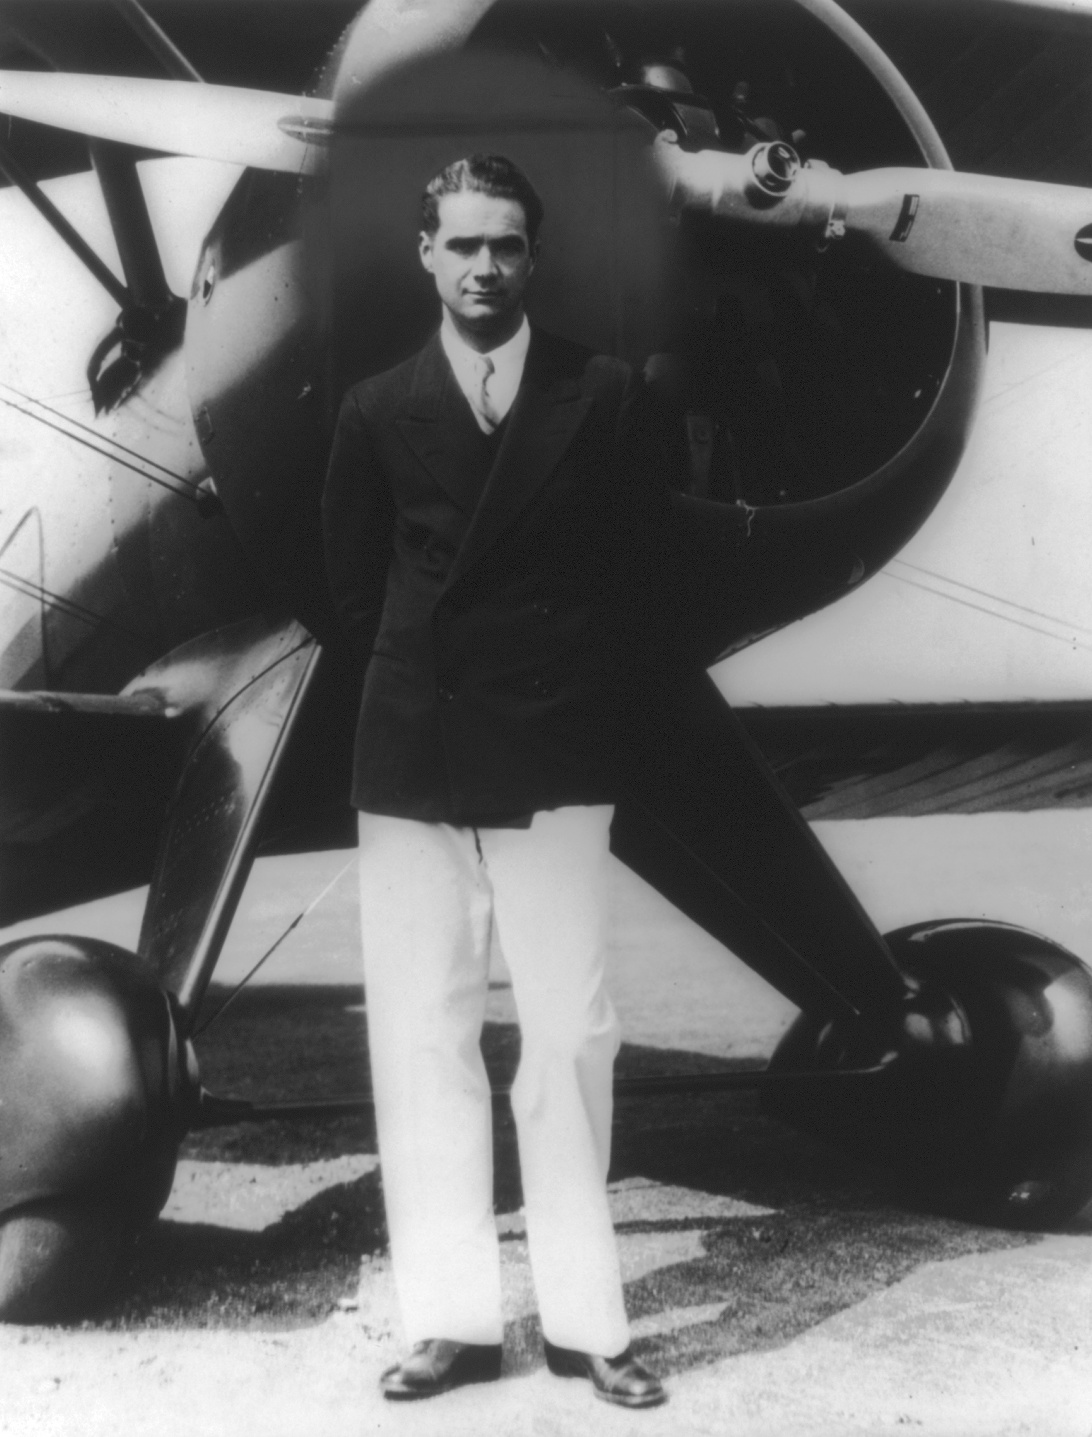 El multimillonario, aviador, empresario y playboy Howard Hughes